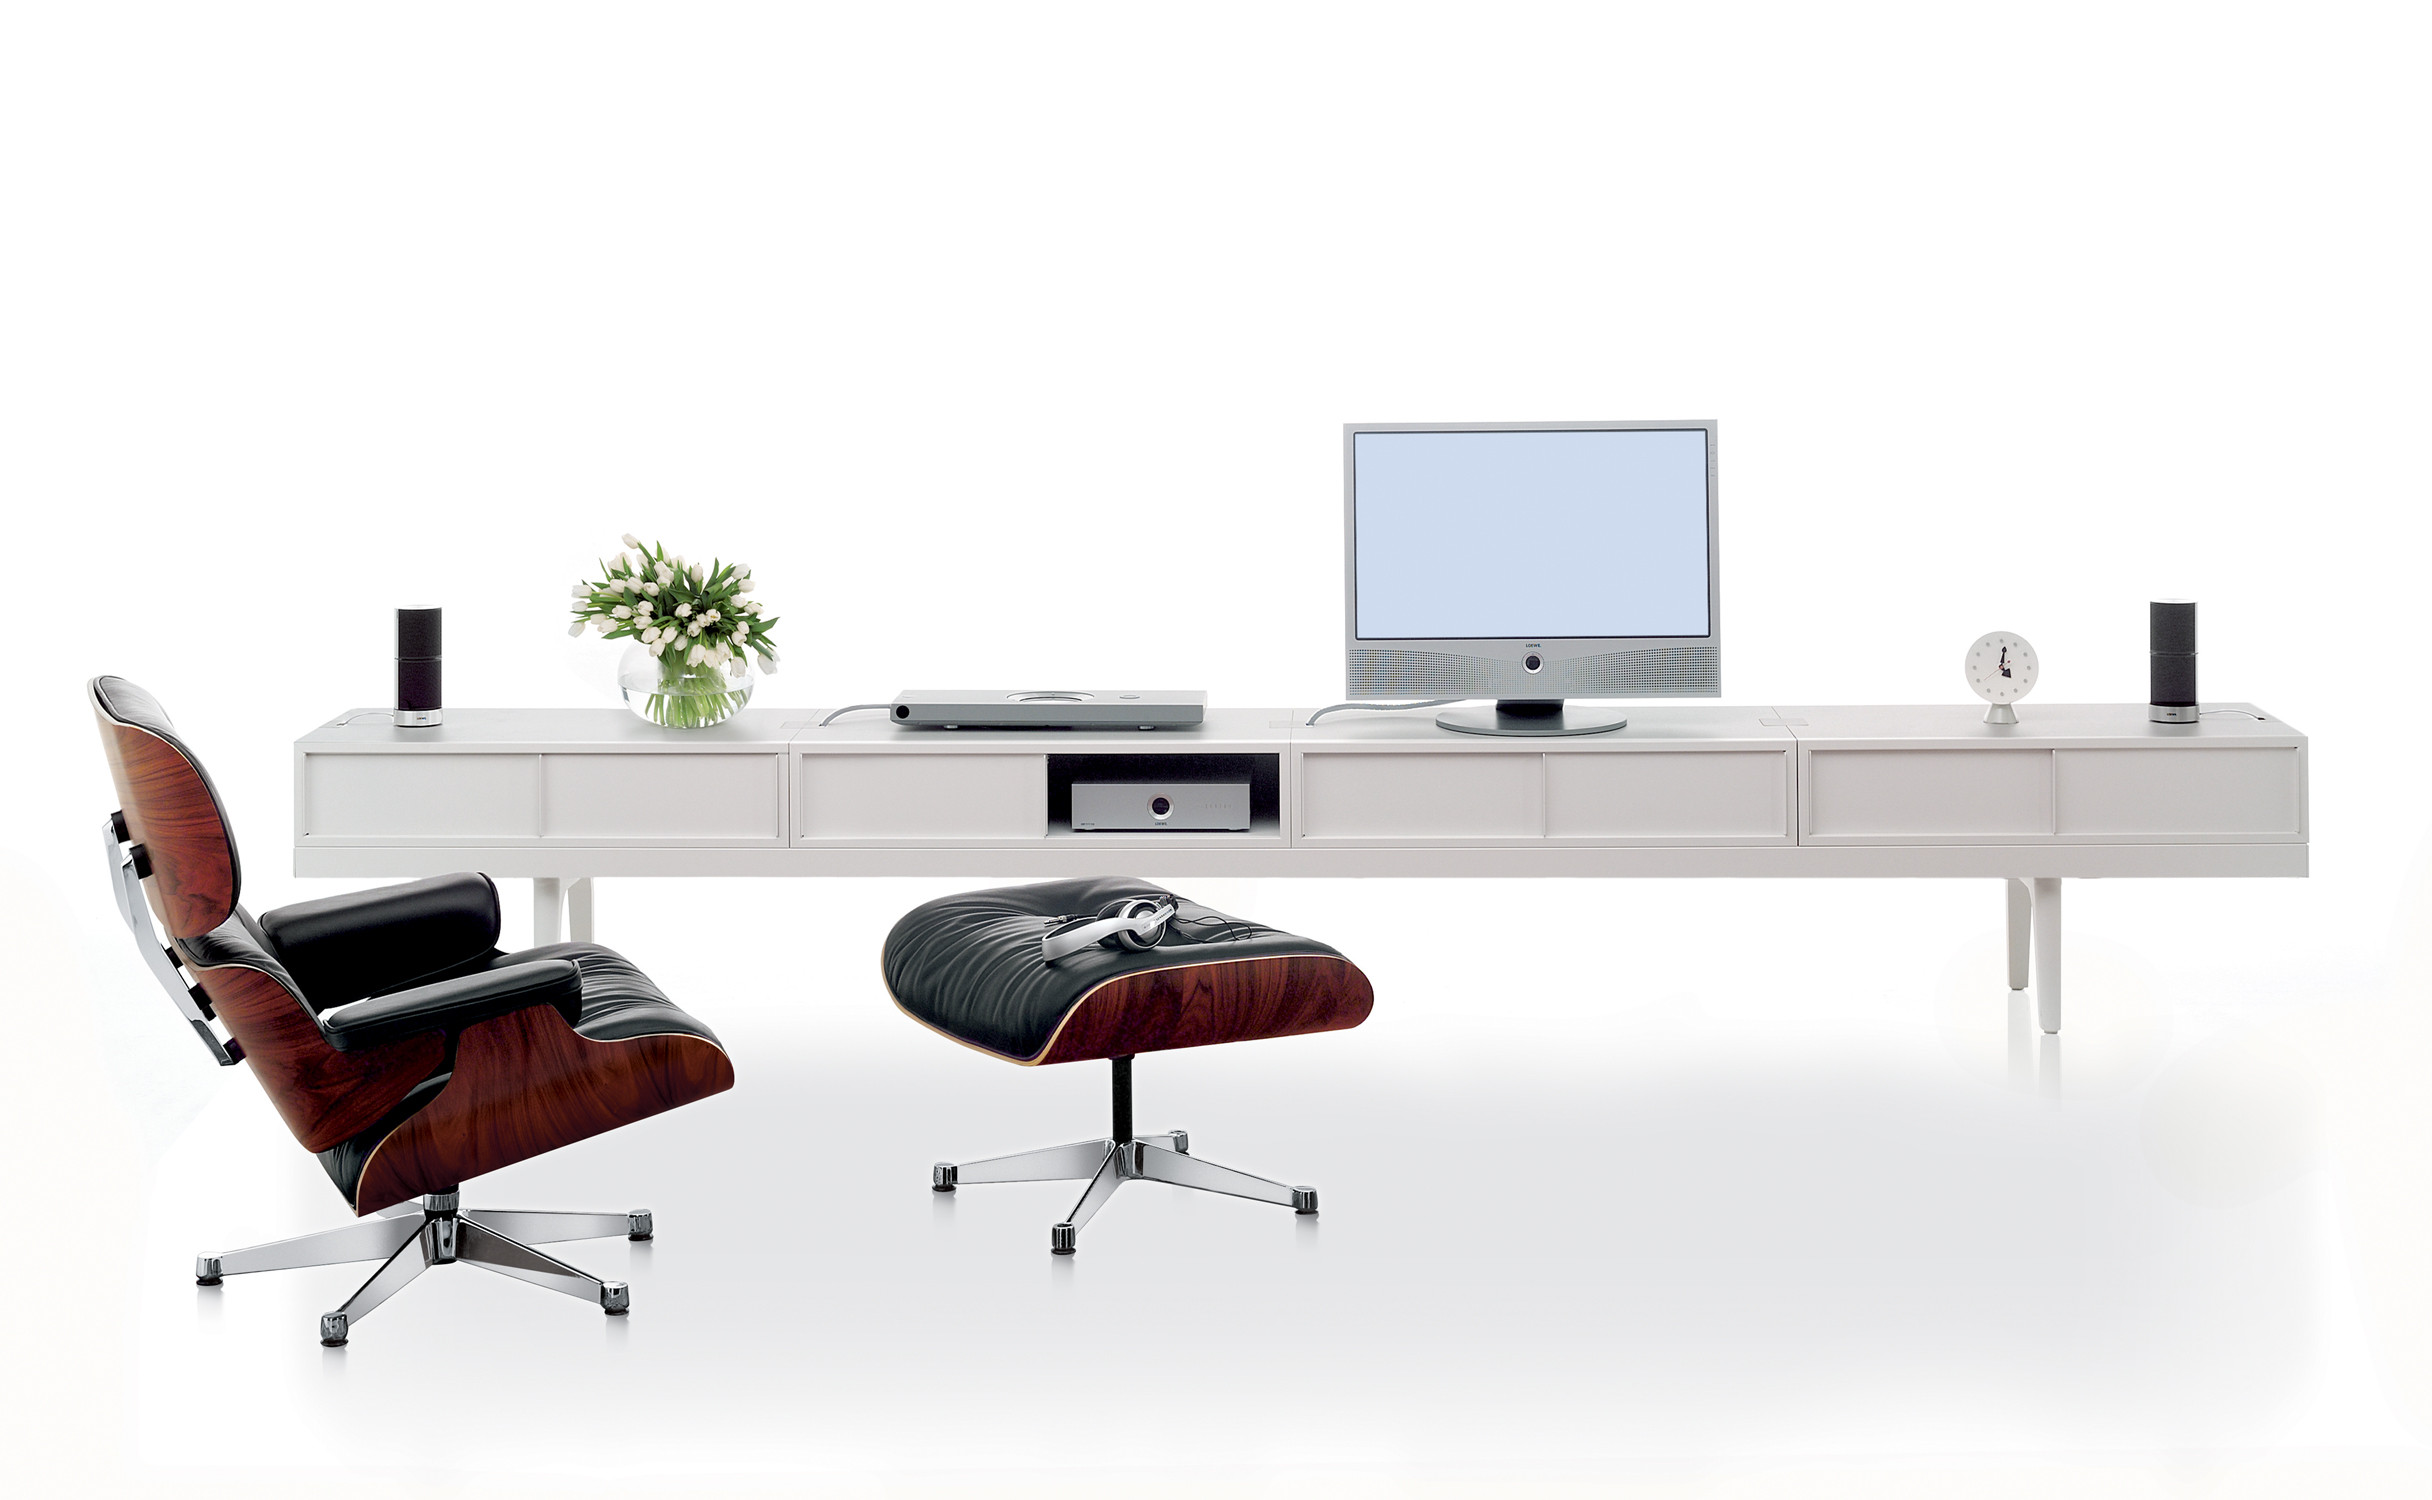 vitra level 34 bench desk office beam desks apres furniture. Black Bedroom Furniture Sets. Home Design Ideas